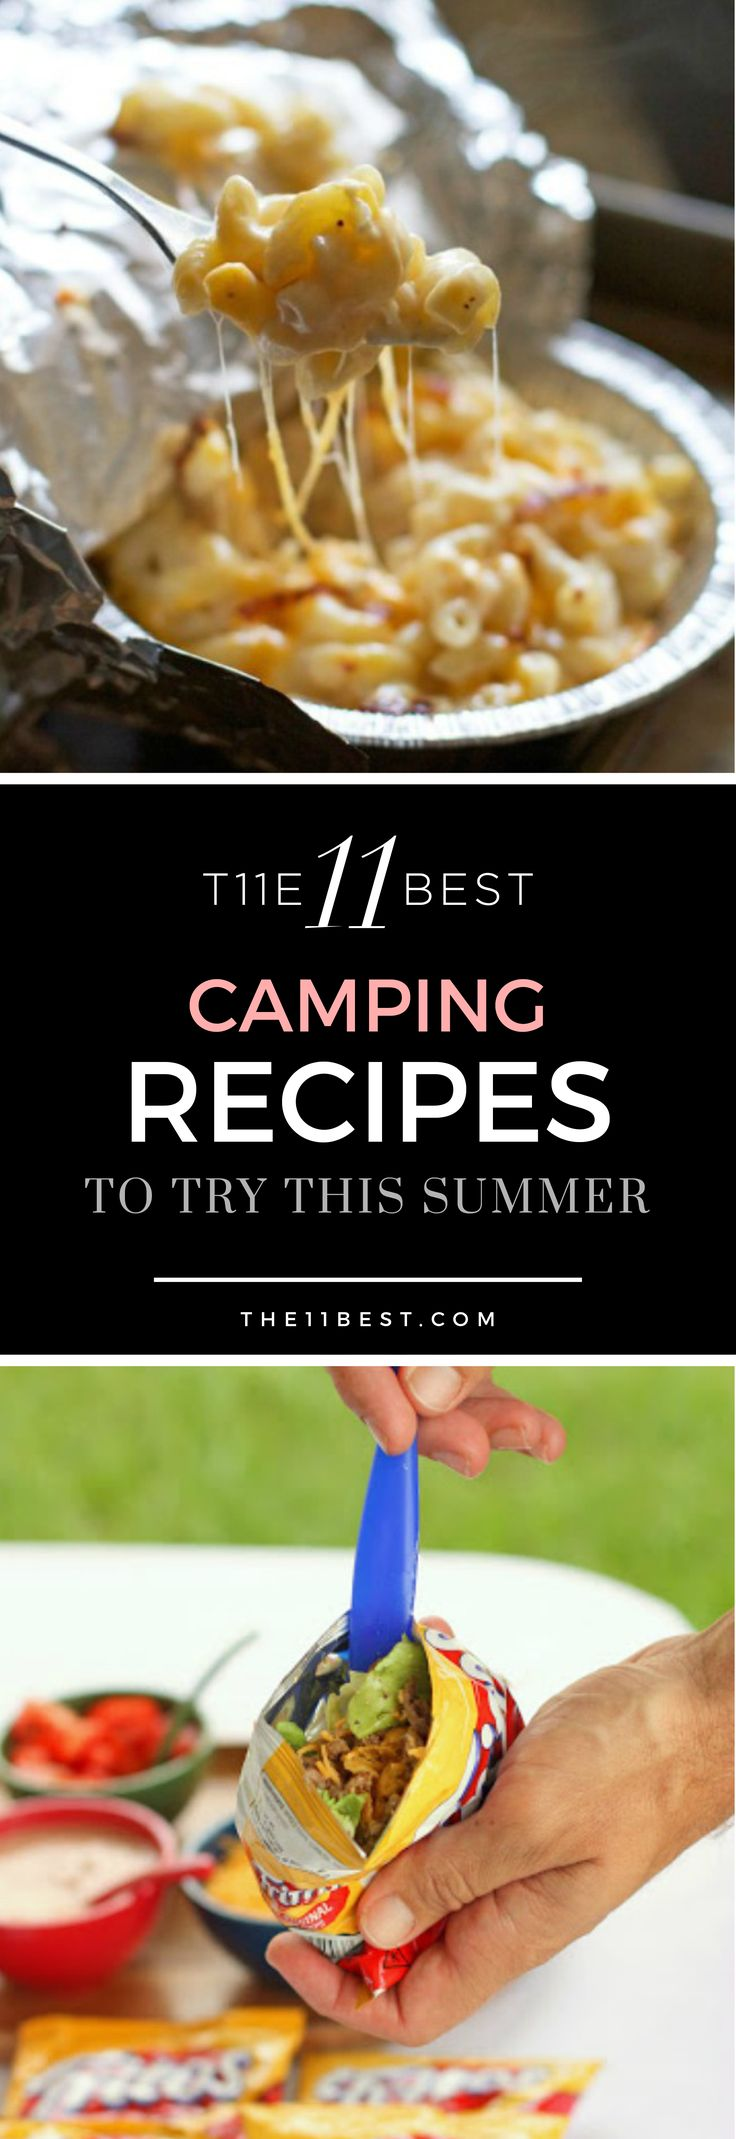 The 11 Best Camping Recipes